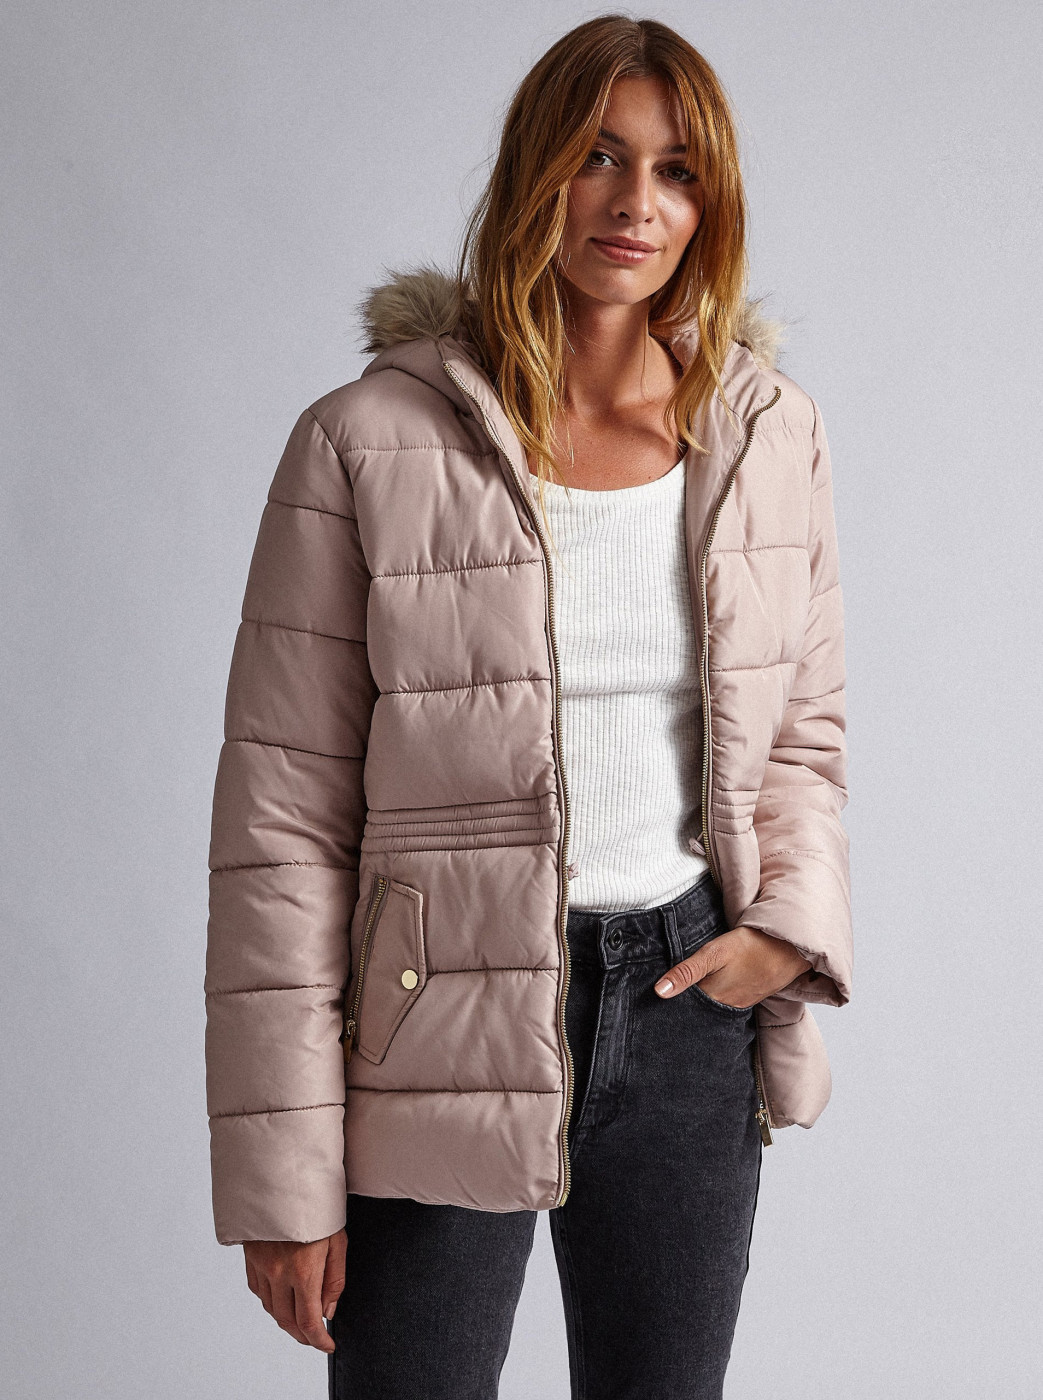 Dorothy Perkins Light Pink Quilted Winter Jacket